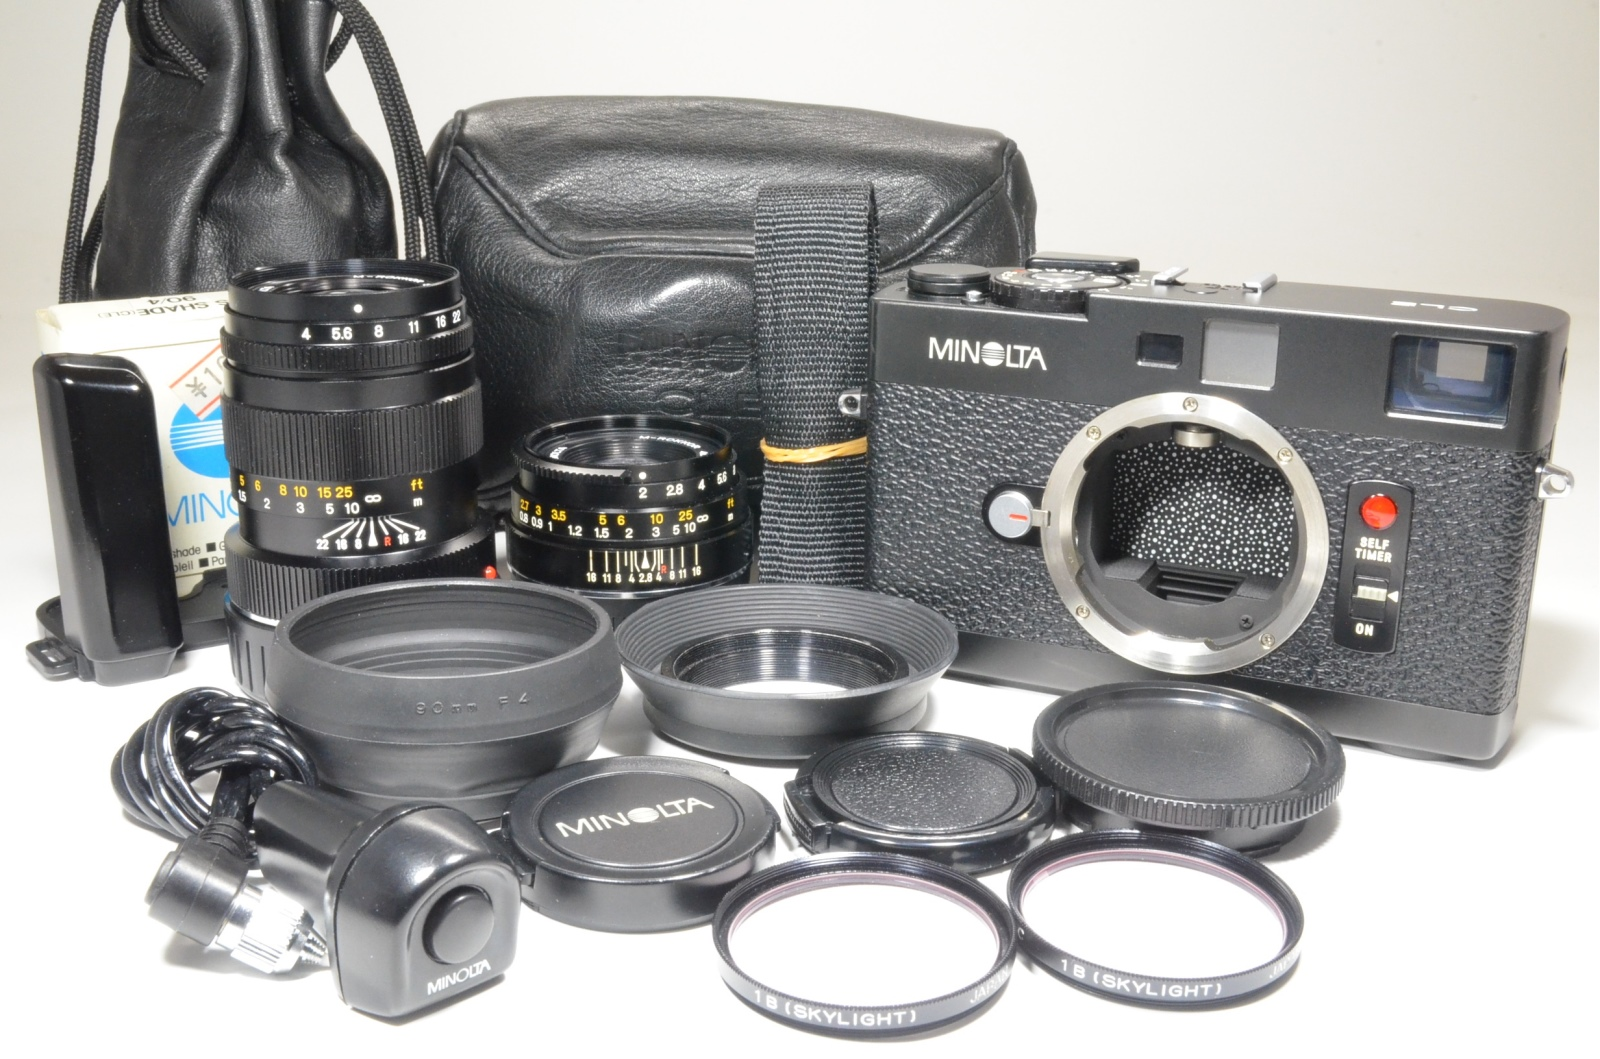 minolta cle 35mm film camera, m-rokkor 40mm f2, 90mm f4, grip and cable release